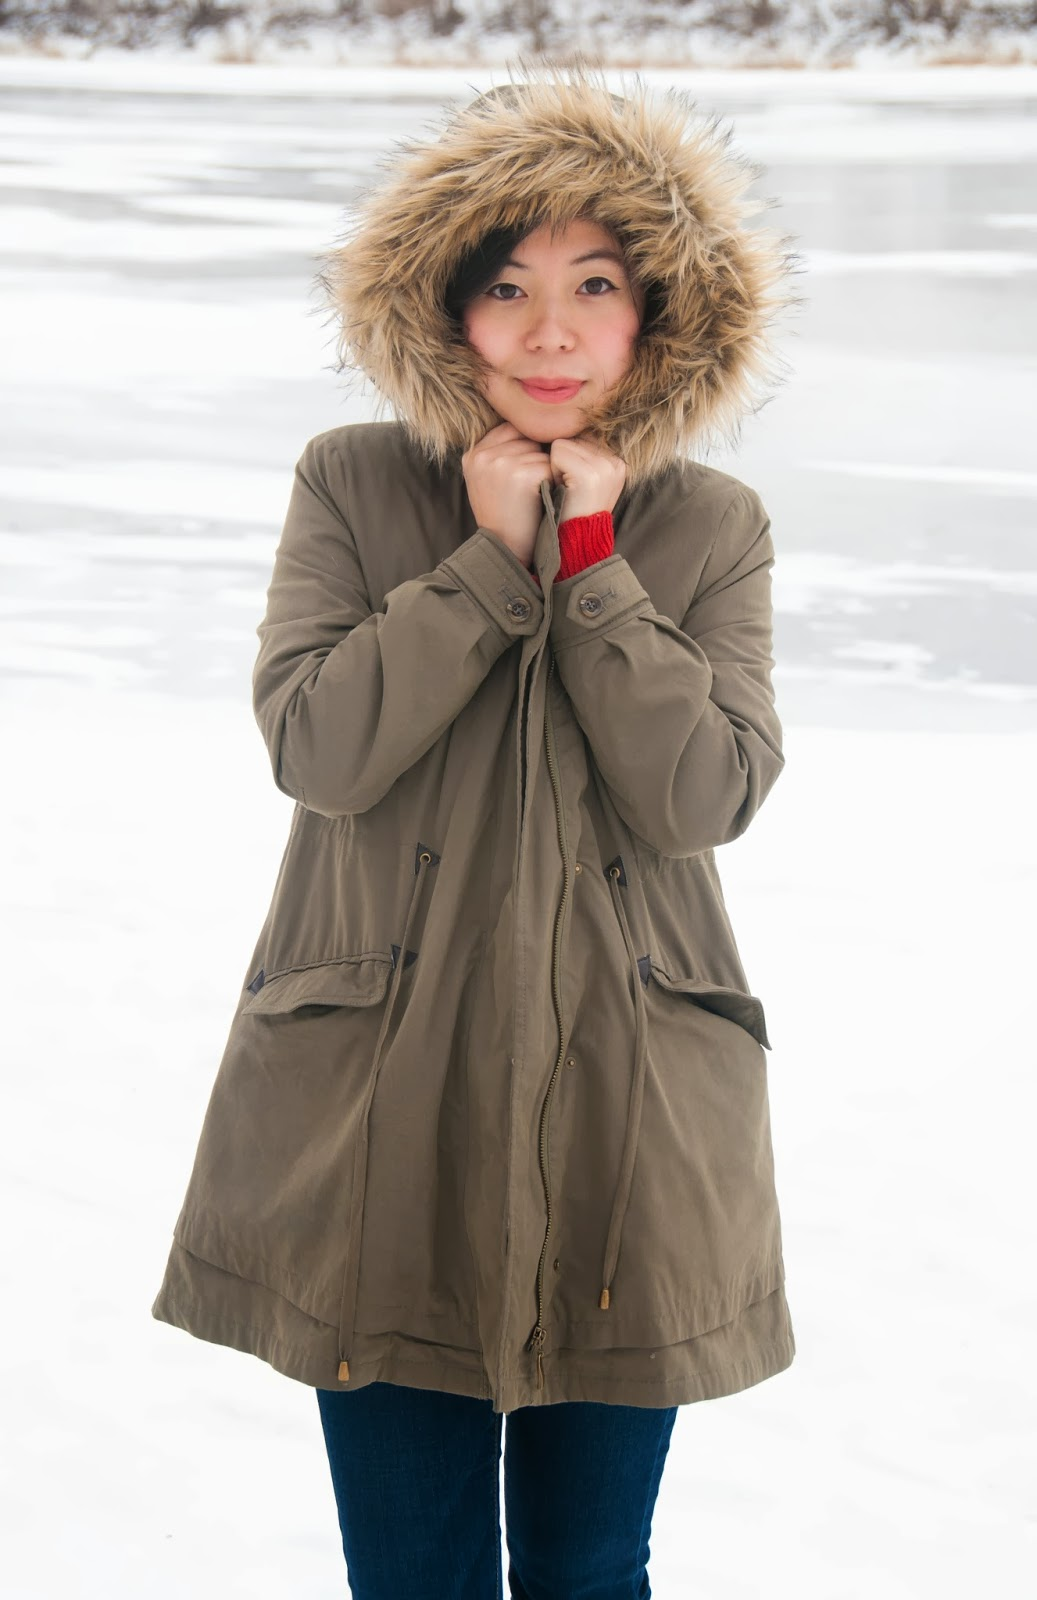 parka army green coat hat beanie infinity scarf red sweater booties jeans grey mittens